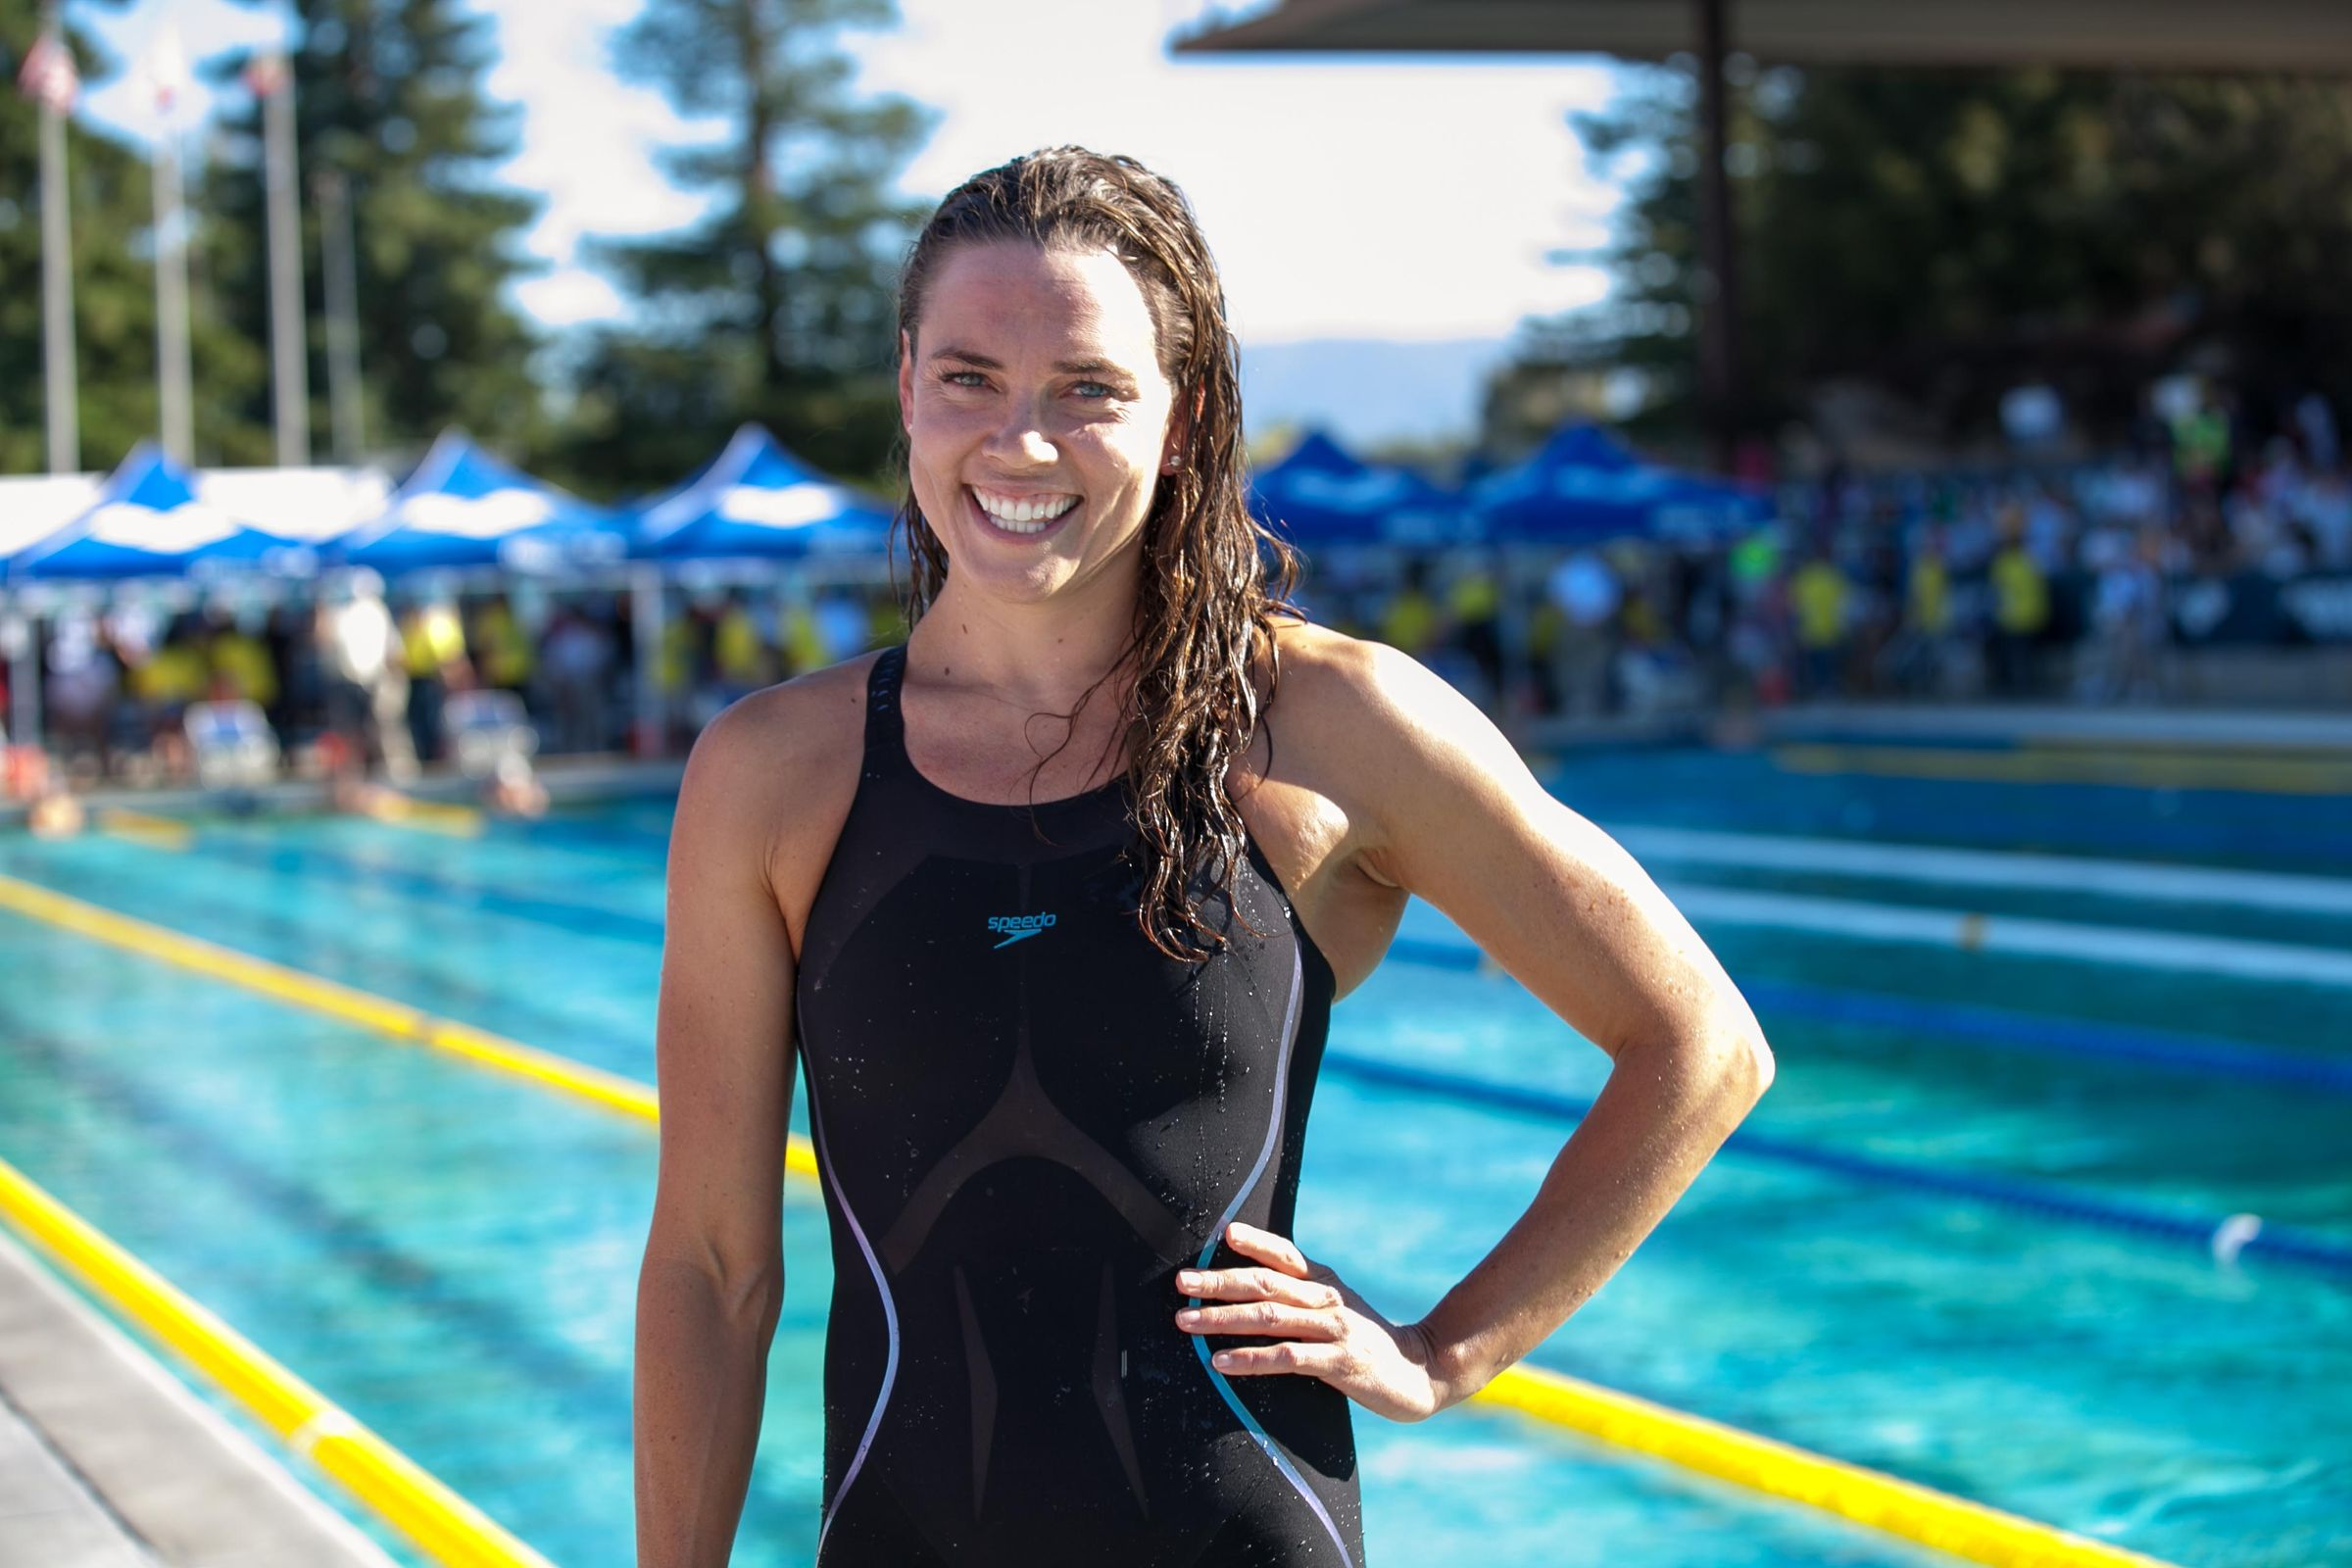 Natalie Coughlin The Perfect Swimming Idol Swimming World News